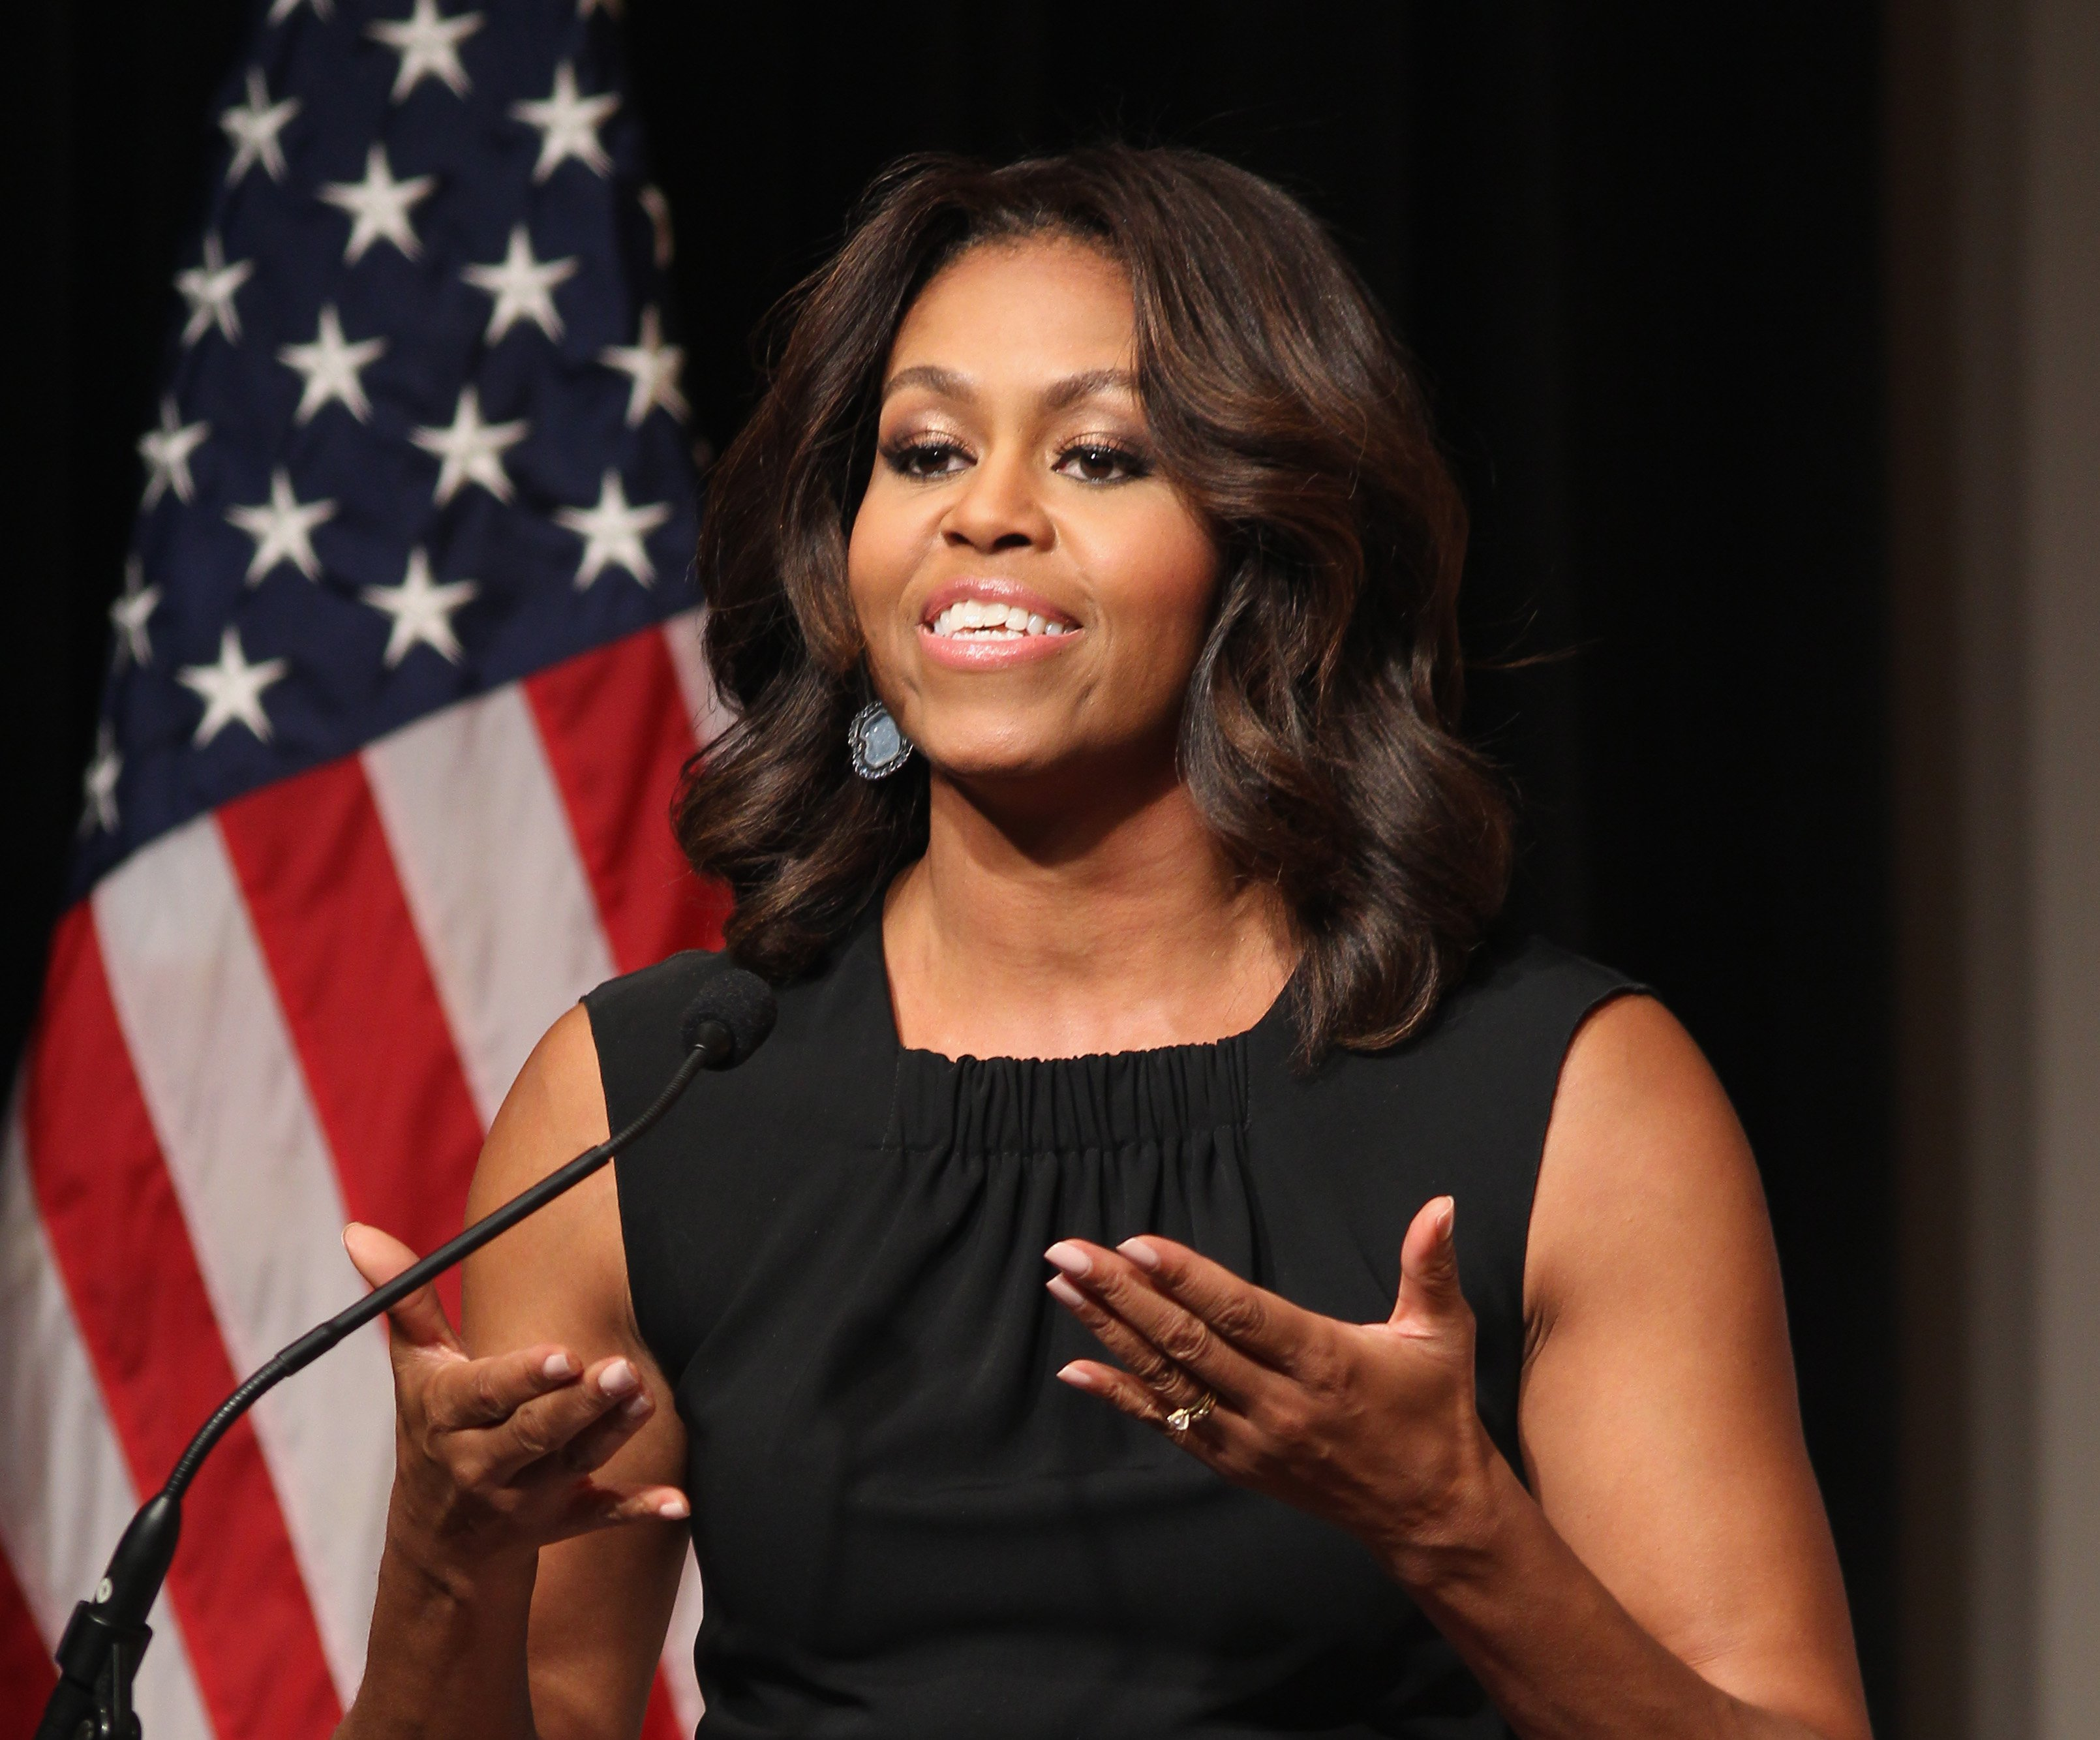 Michelle Obama at the Women in Military Service for America Memorial on Nov. 10, 2014 in Virginia | Photo: Getty Images